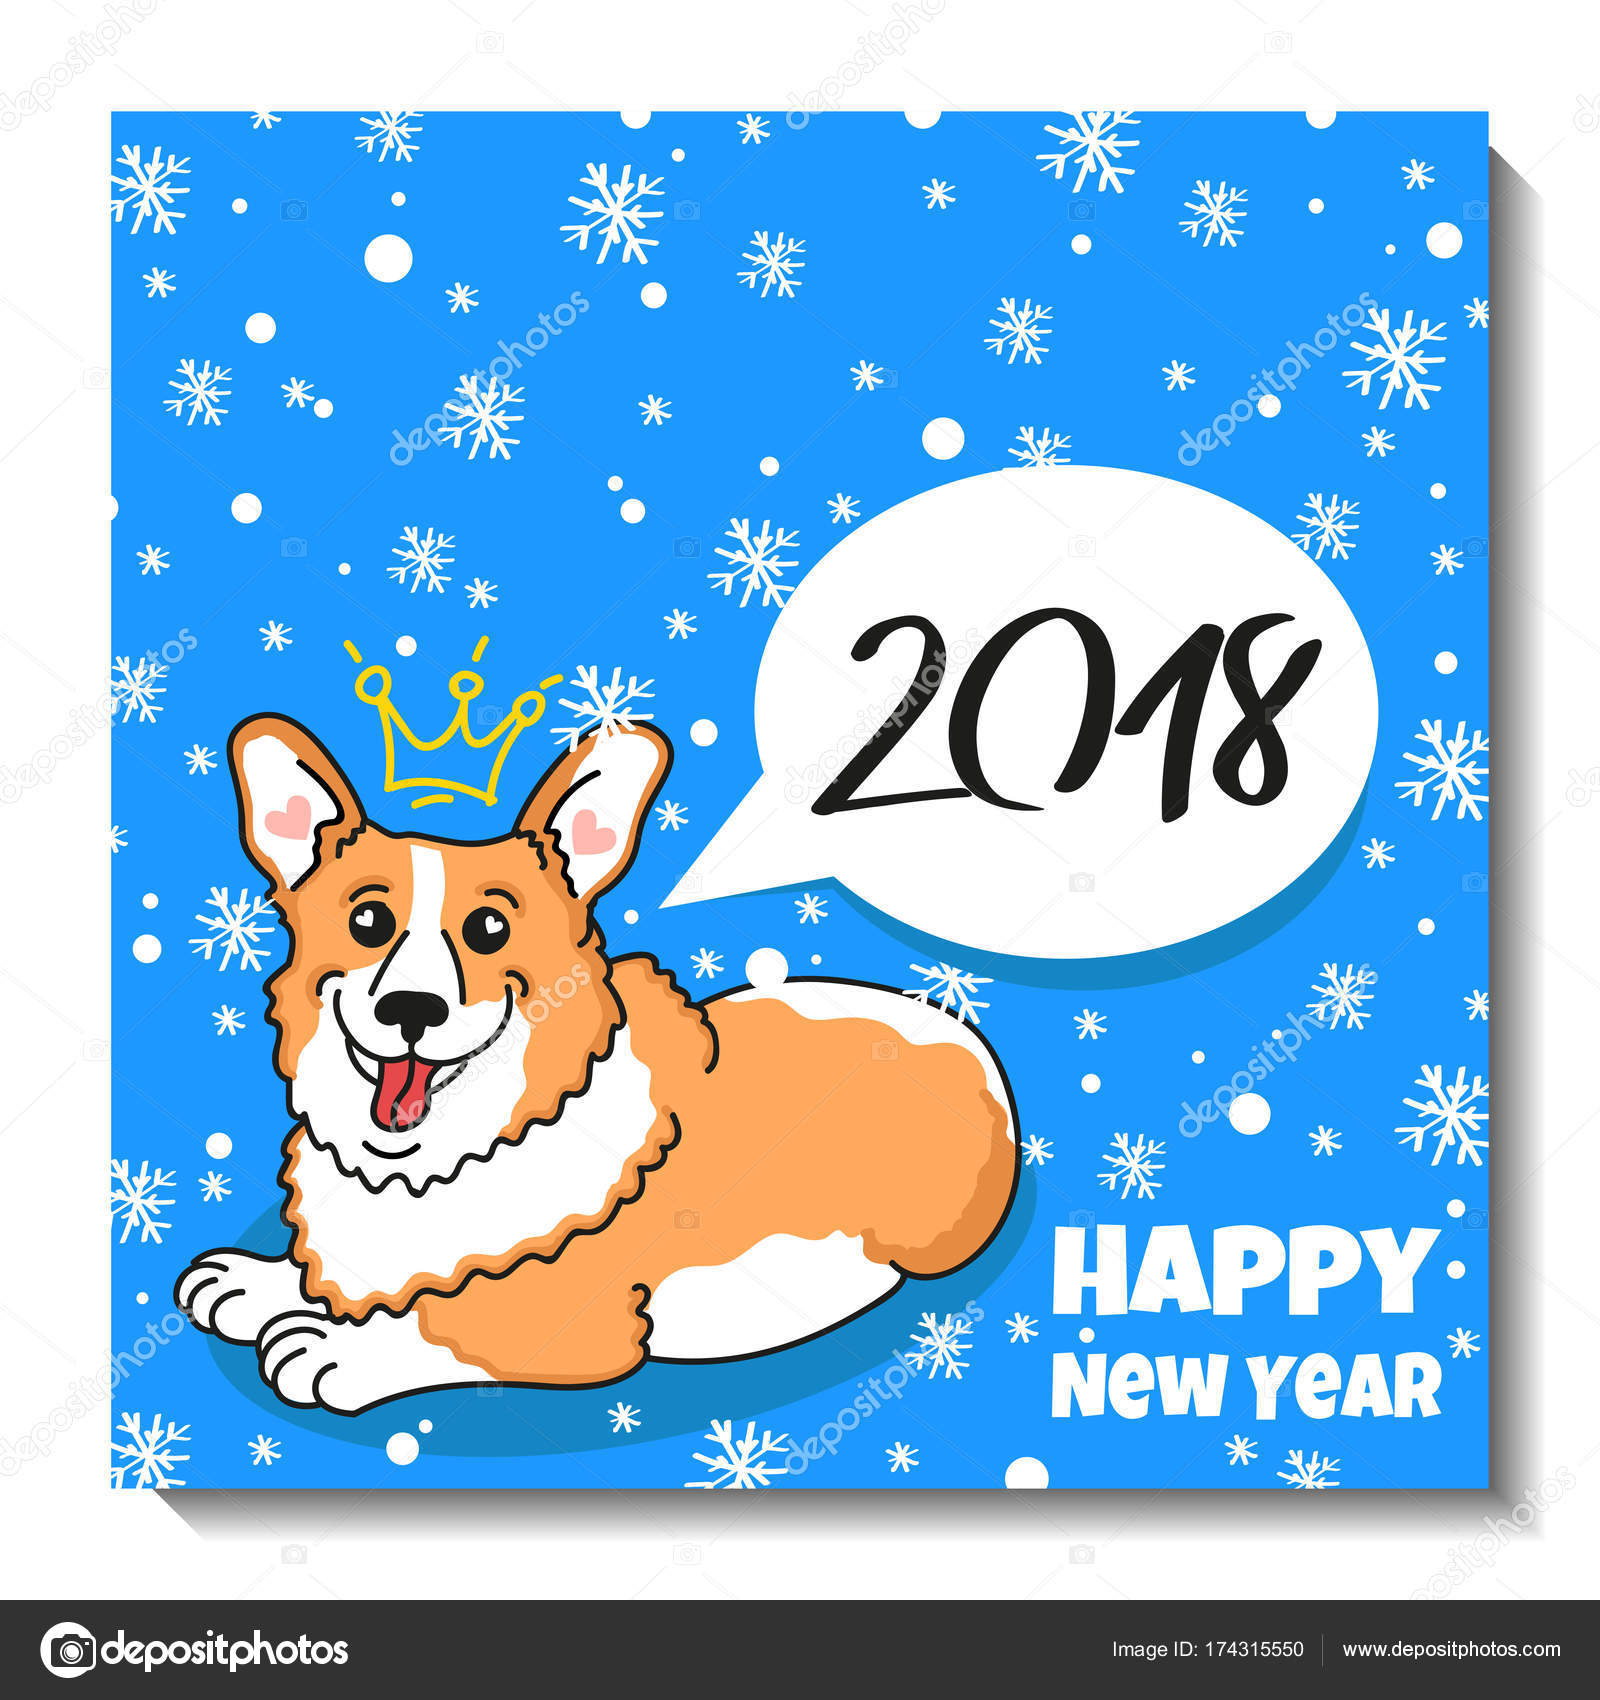 Merry christmas card design holiday postcard with puppy welsh corgi merry christmas card design holiday postcard with puppy welsh corgi pembroke text snow kristyandbryce Image collections